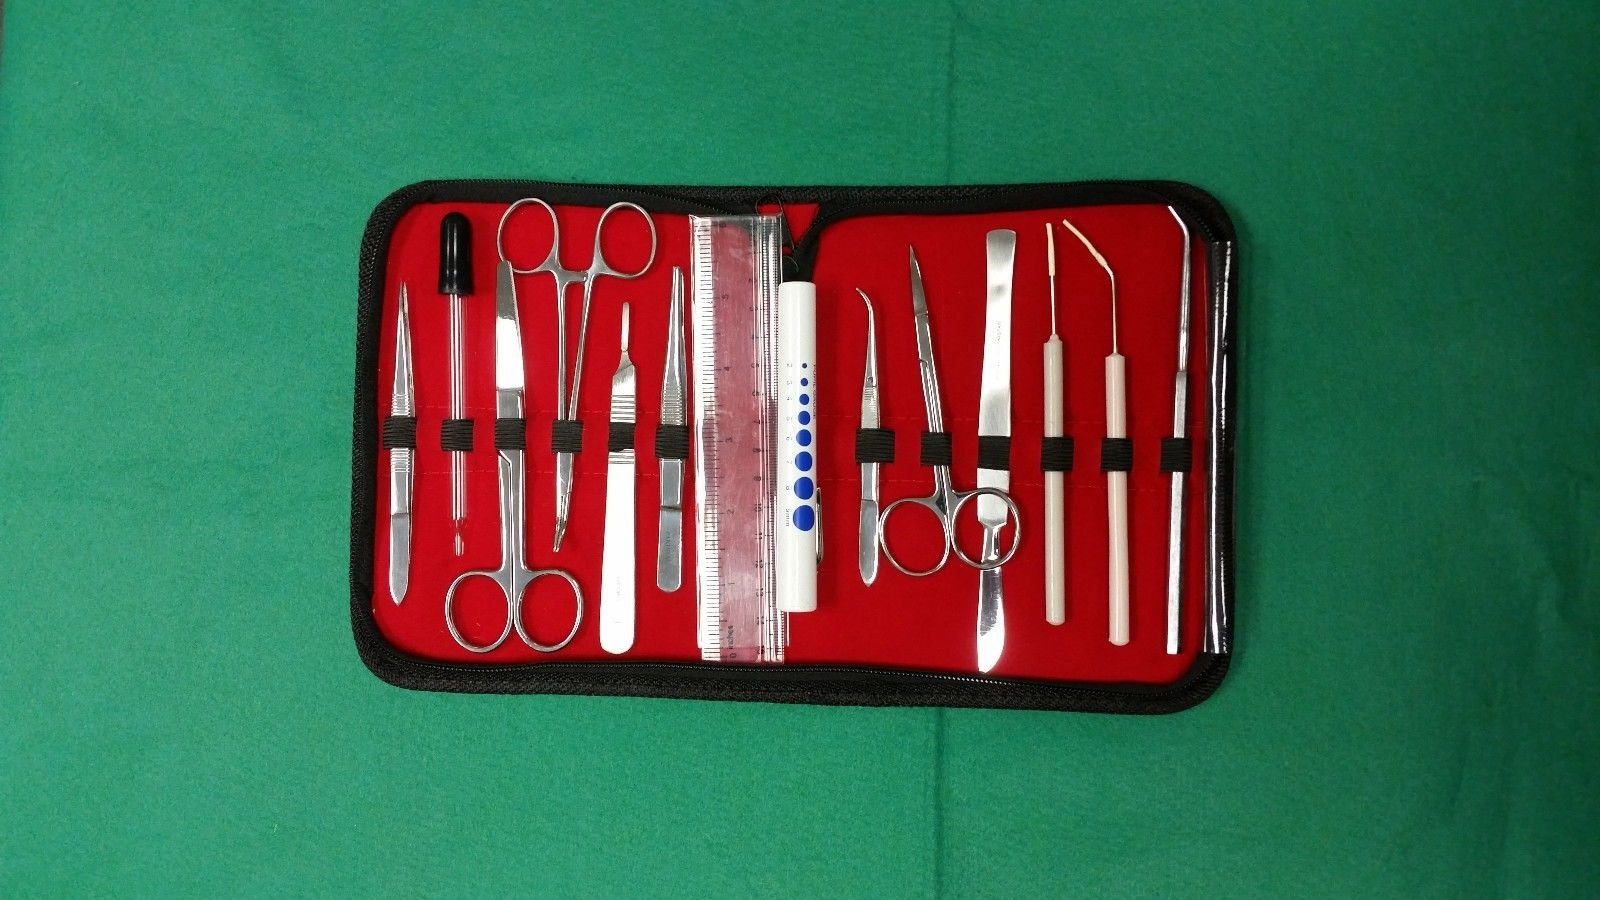 Dissecting Dissection Kit Set Anatomy Medical Student College Lab Teacher Choice